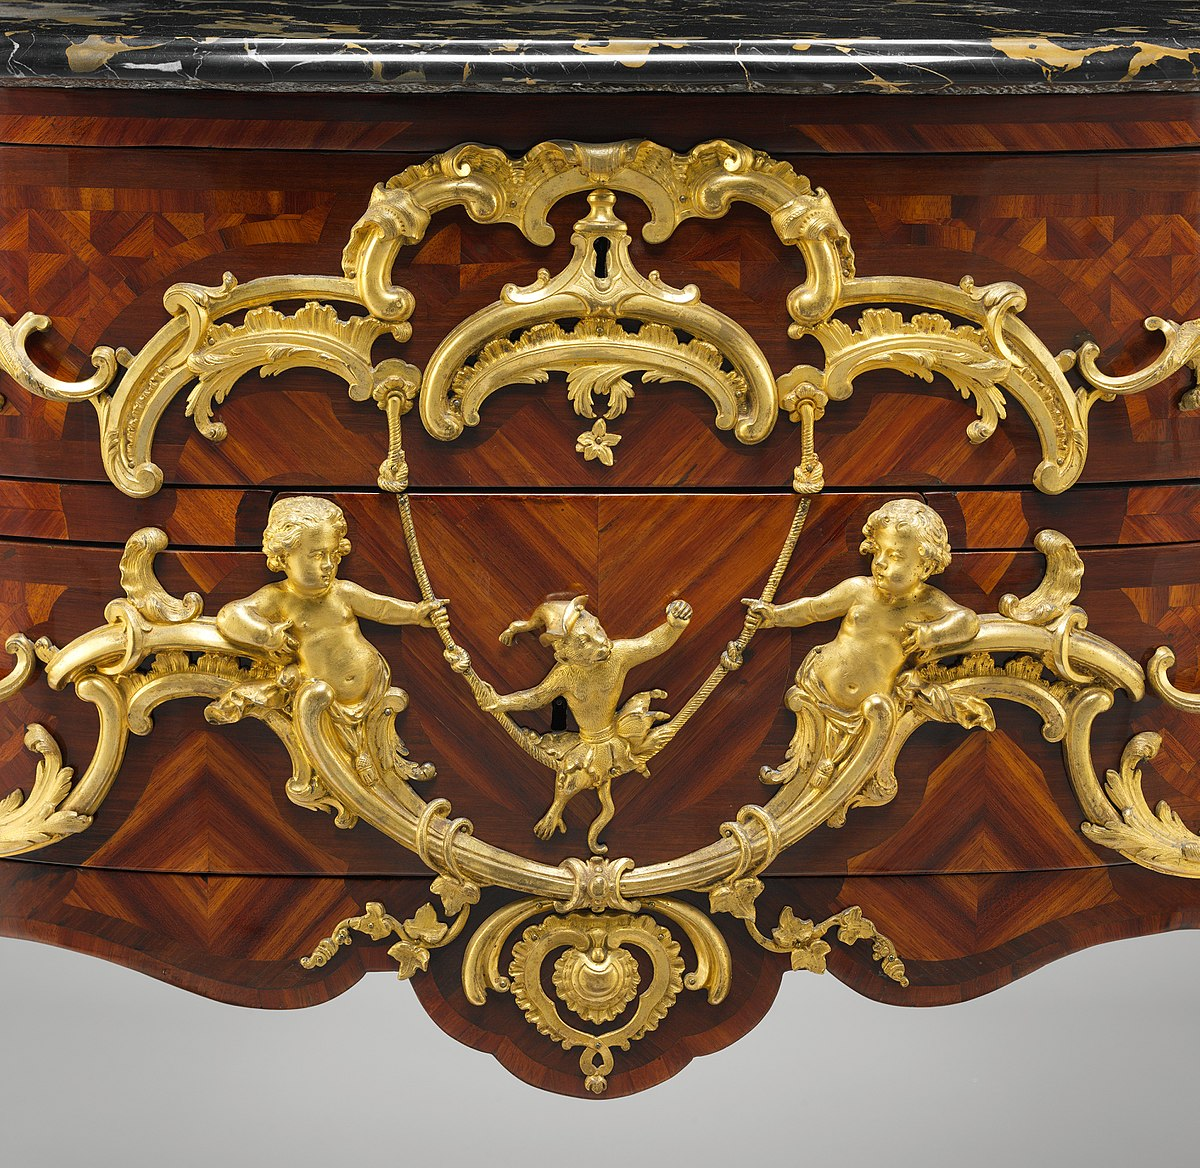 Xv Louis Furniture Louis Wikipedia Louis Wikipedia Louis Xv Furniture Wikipedia Furniture Xv 45AjRL